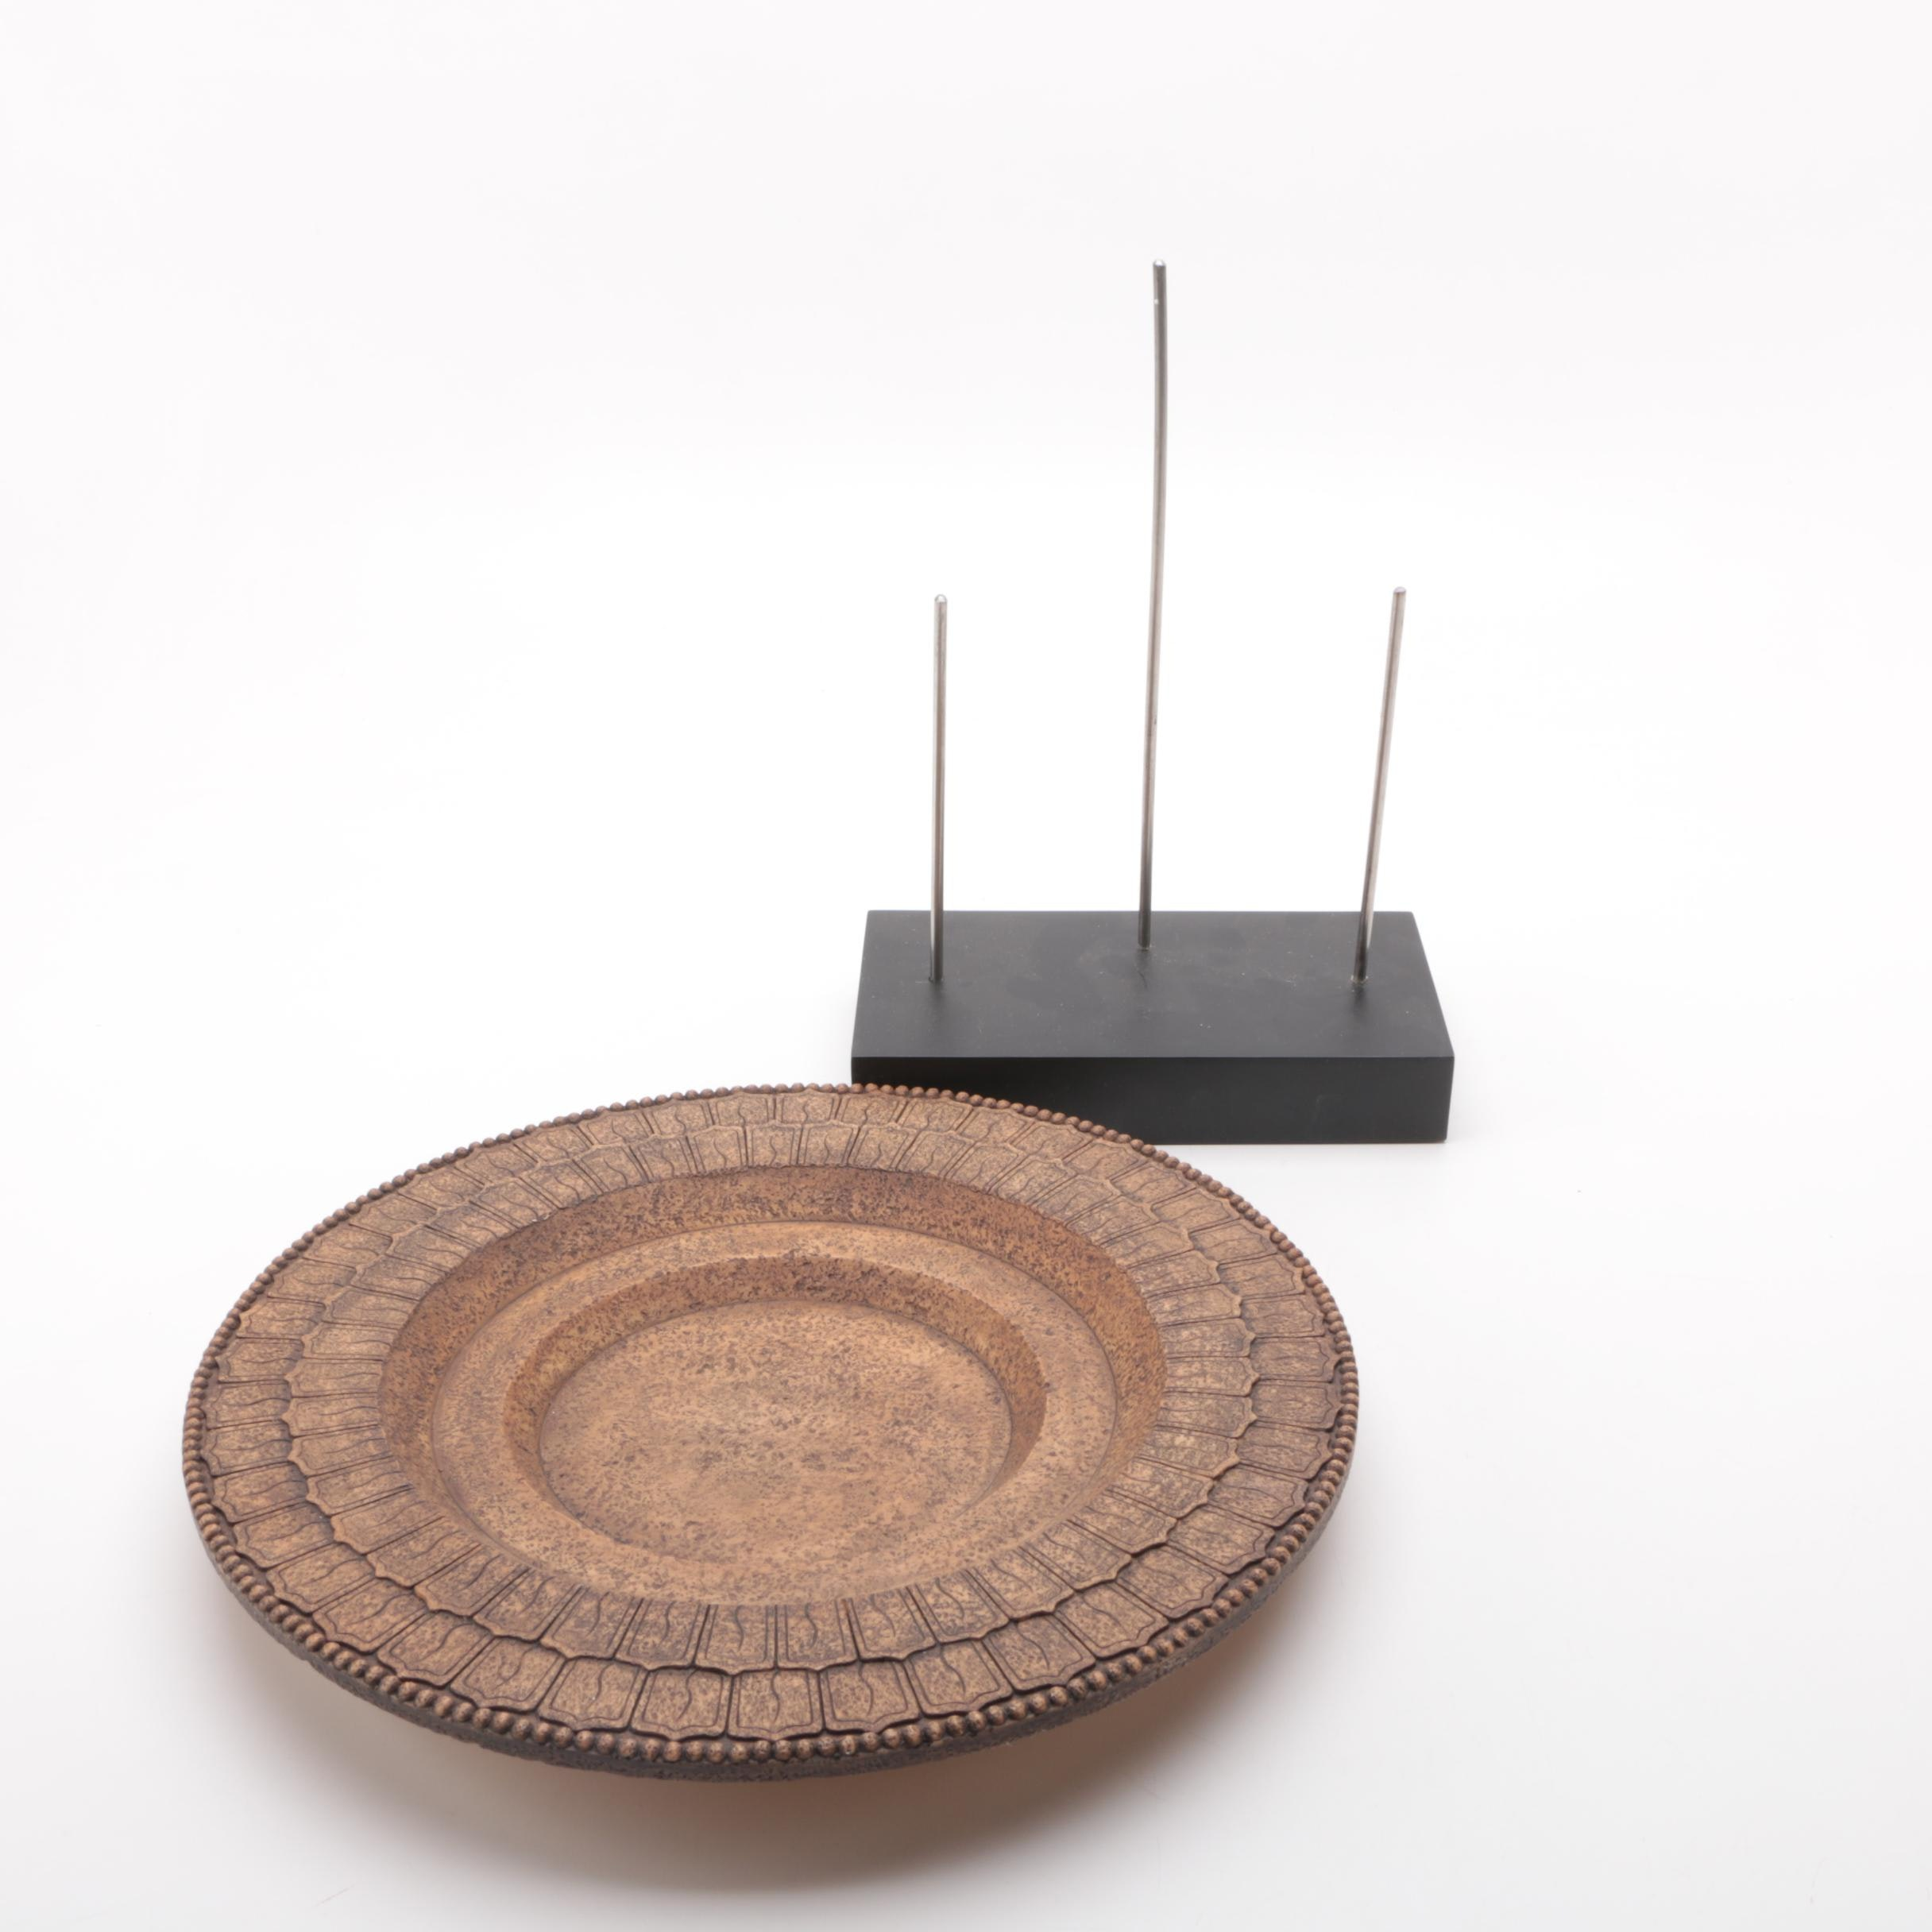 Beaded Rim Plate and Stand